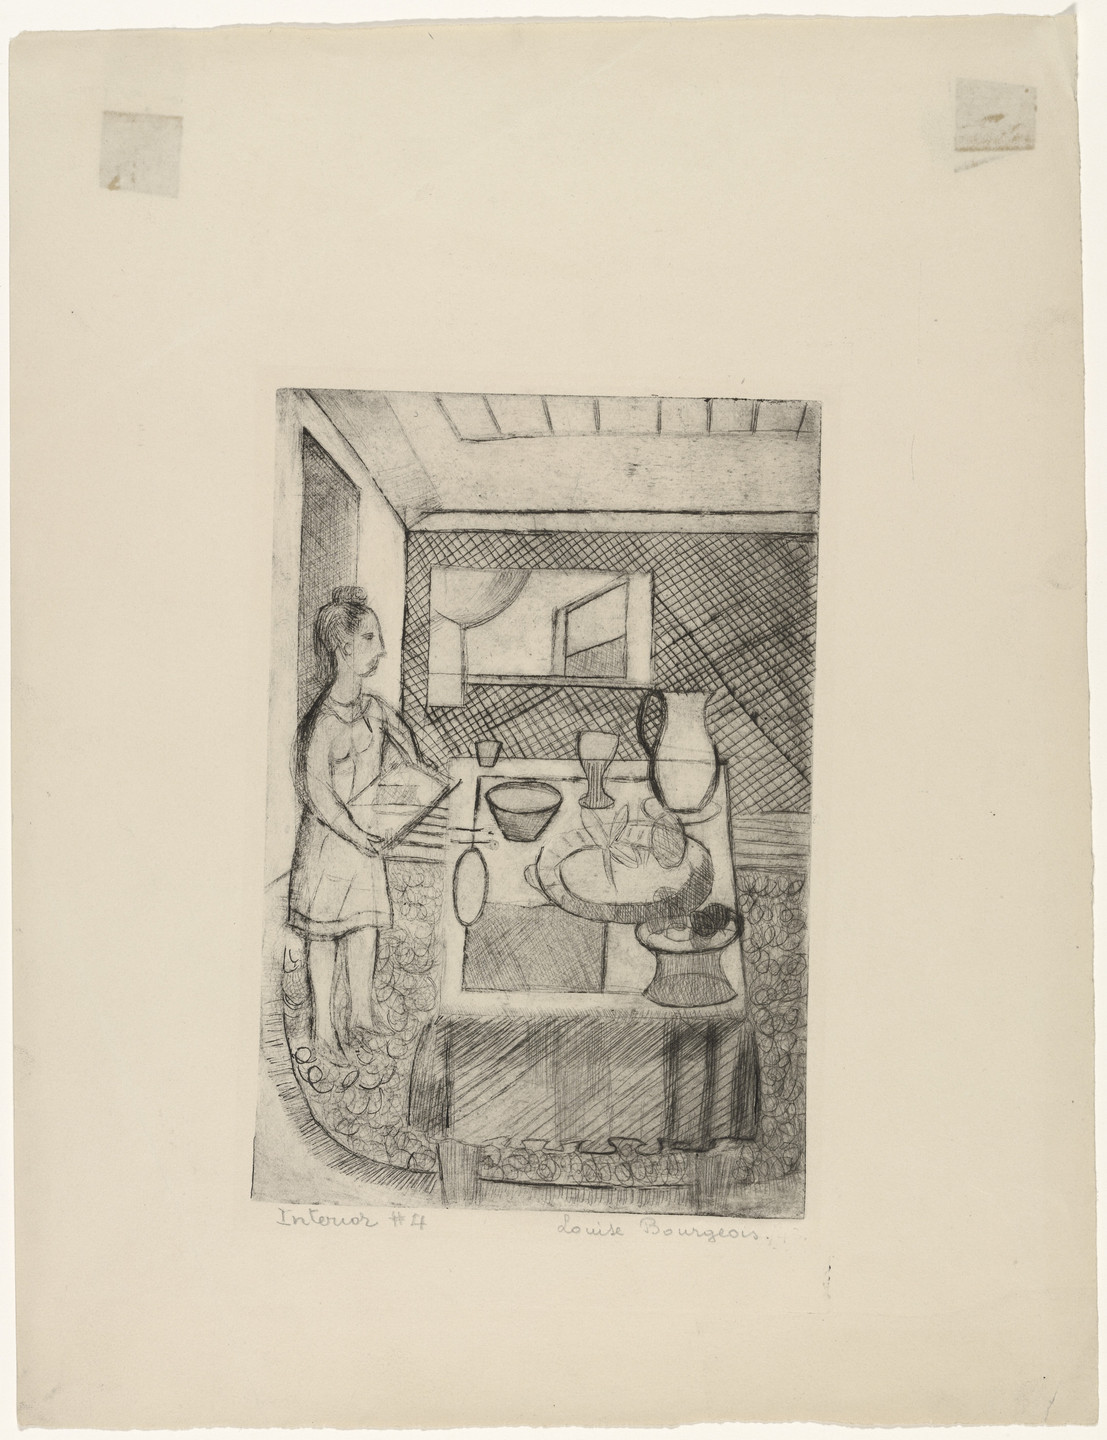 Louise Bourgeois. Easton. c. 1941